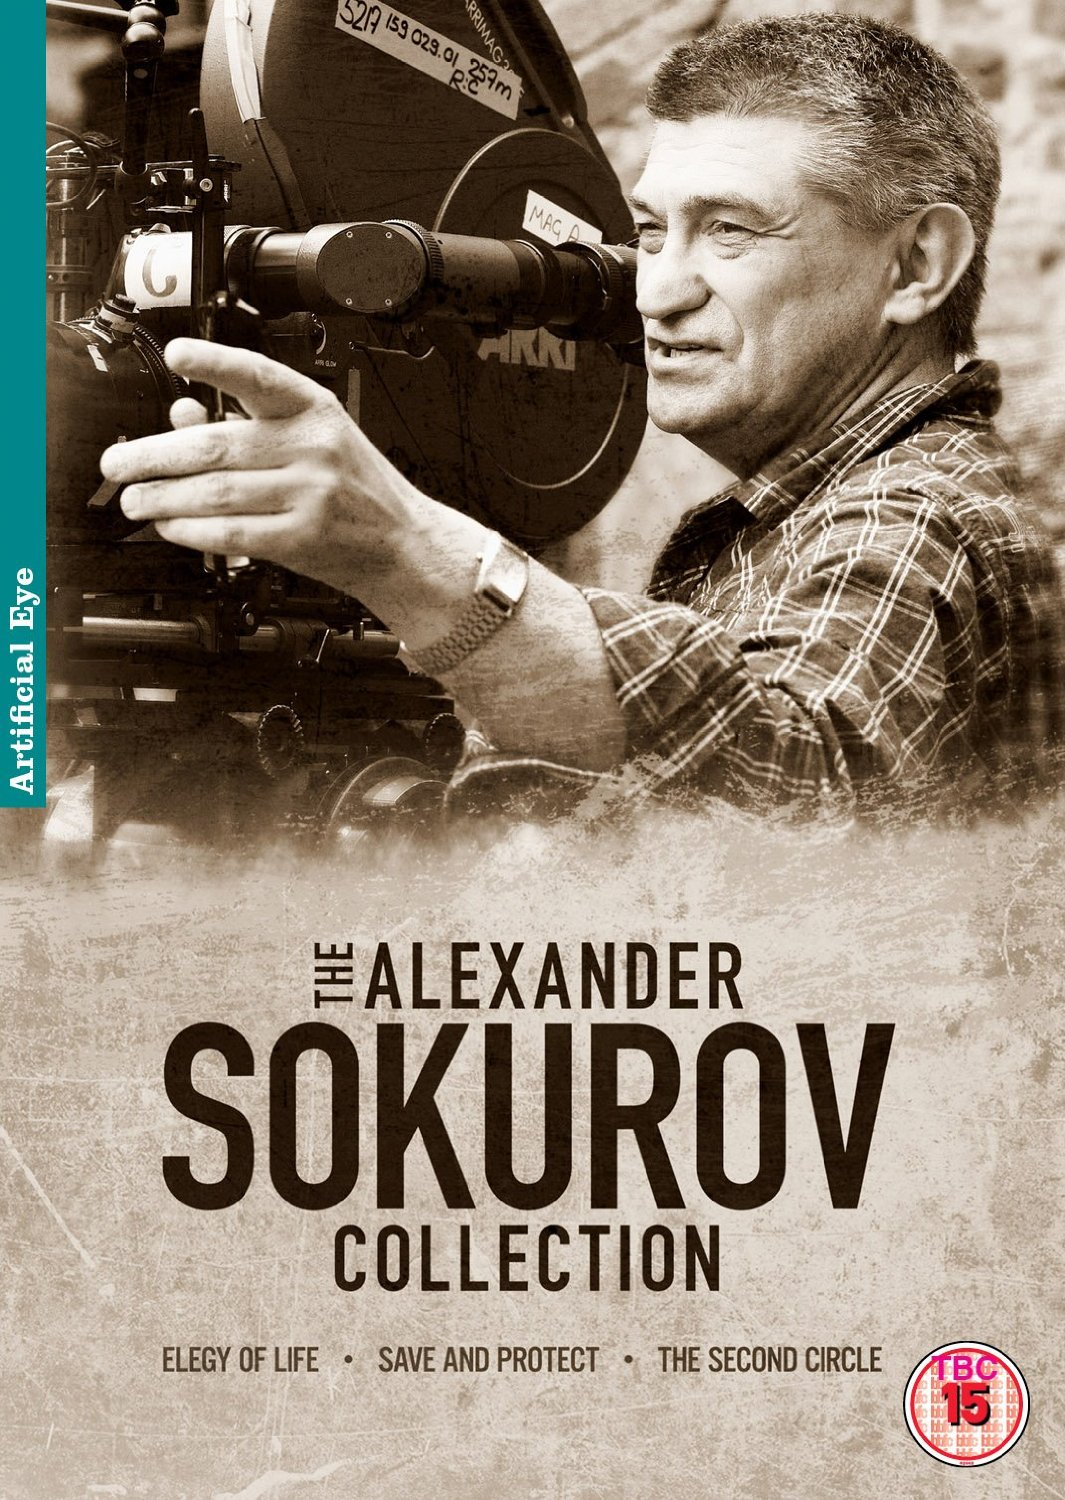 Buy The Alexander Sokurov Collection